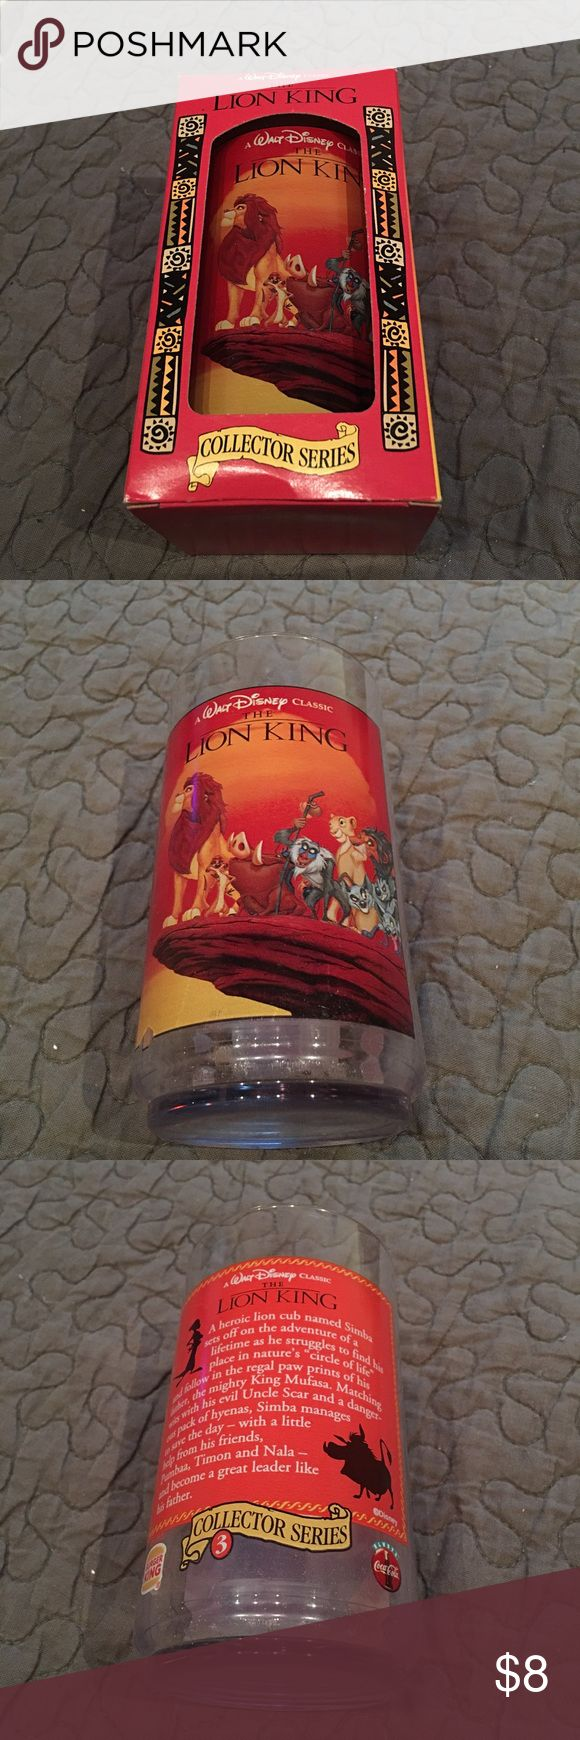 "Disney Lion King Cup Burger King Collector Series Disney Lion King Burger King Collector Series Cup in original box. This cup is number 3 in the Collector Series. Cup measures 5.5"" tall and 3"" across. Made of plastic, not glass. In excellent condition, never used. Other"